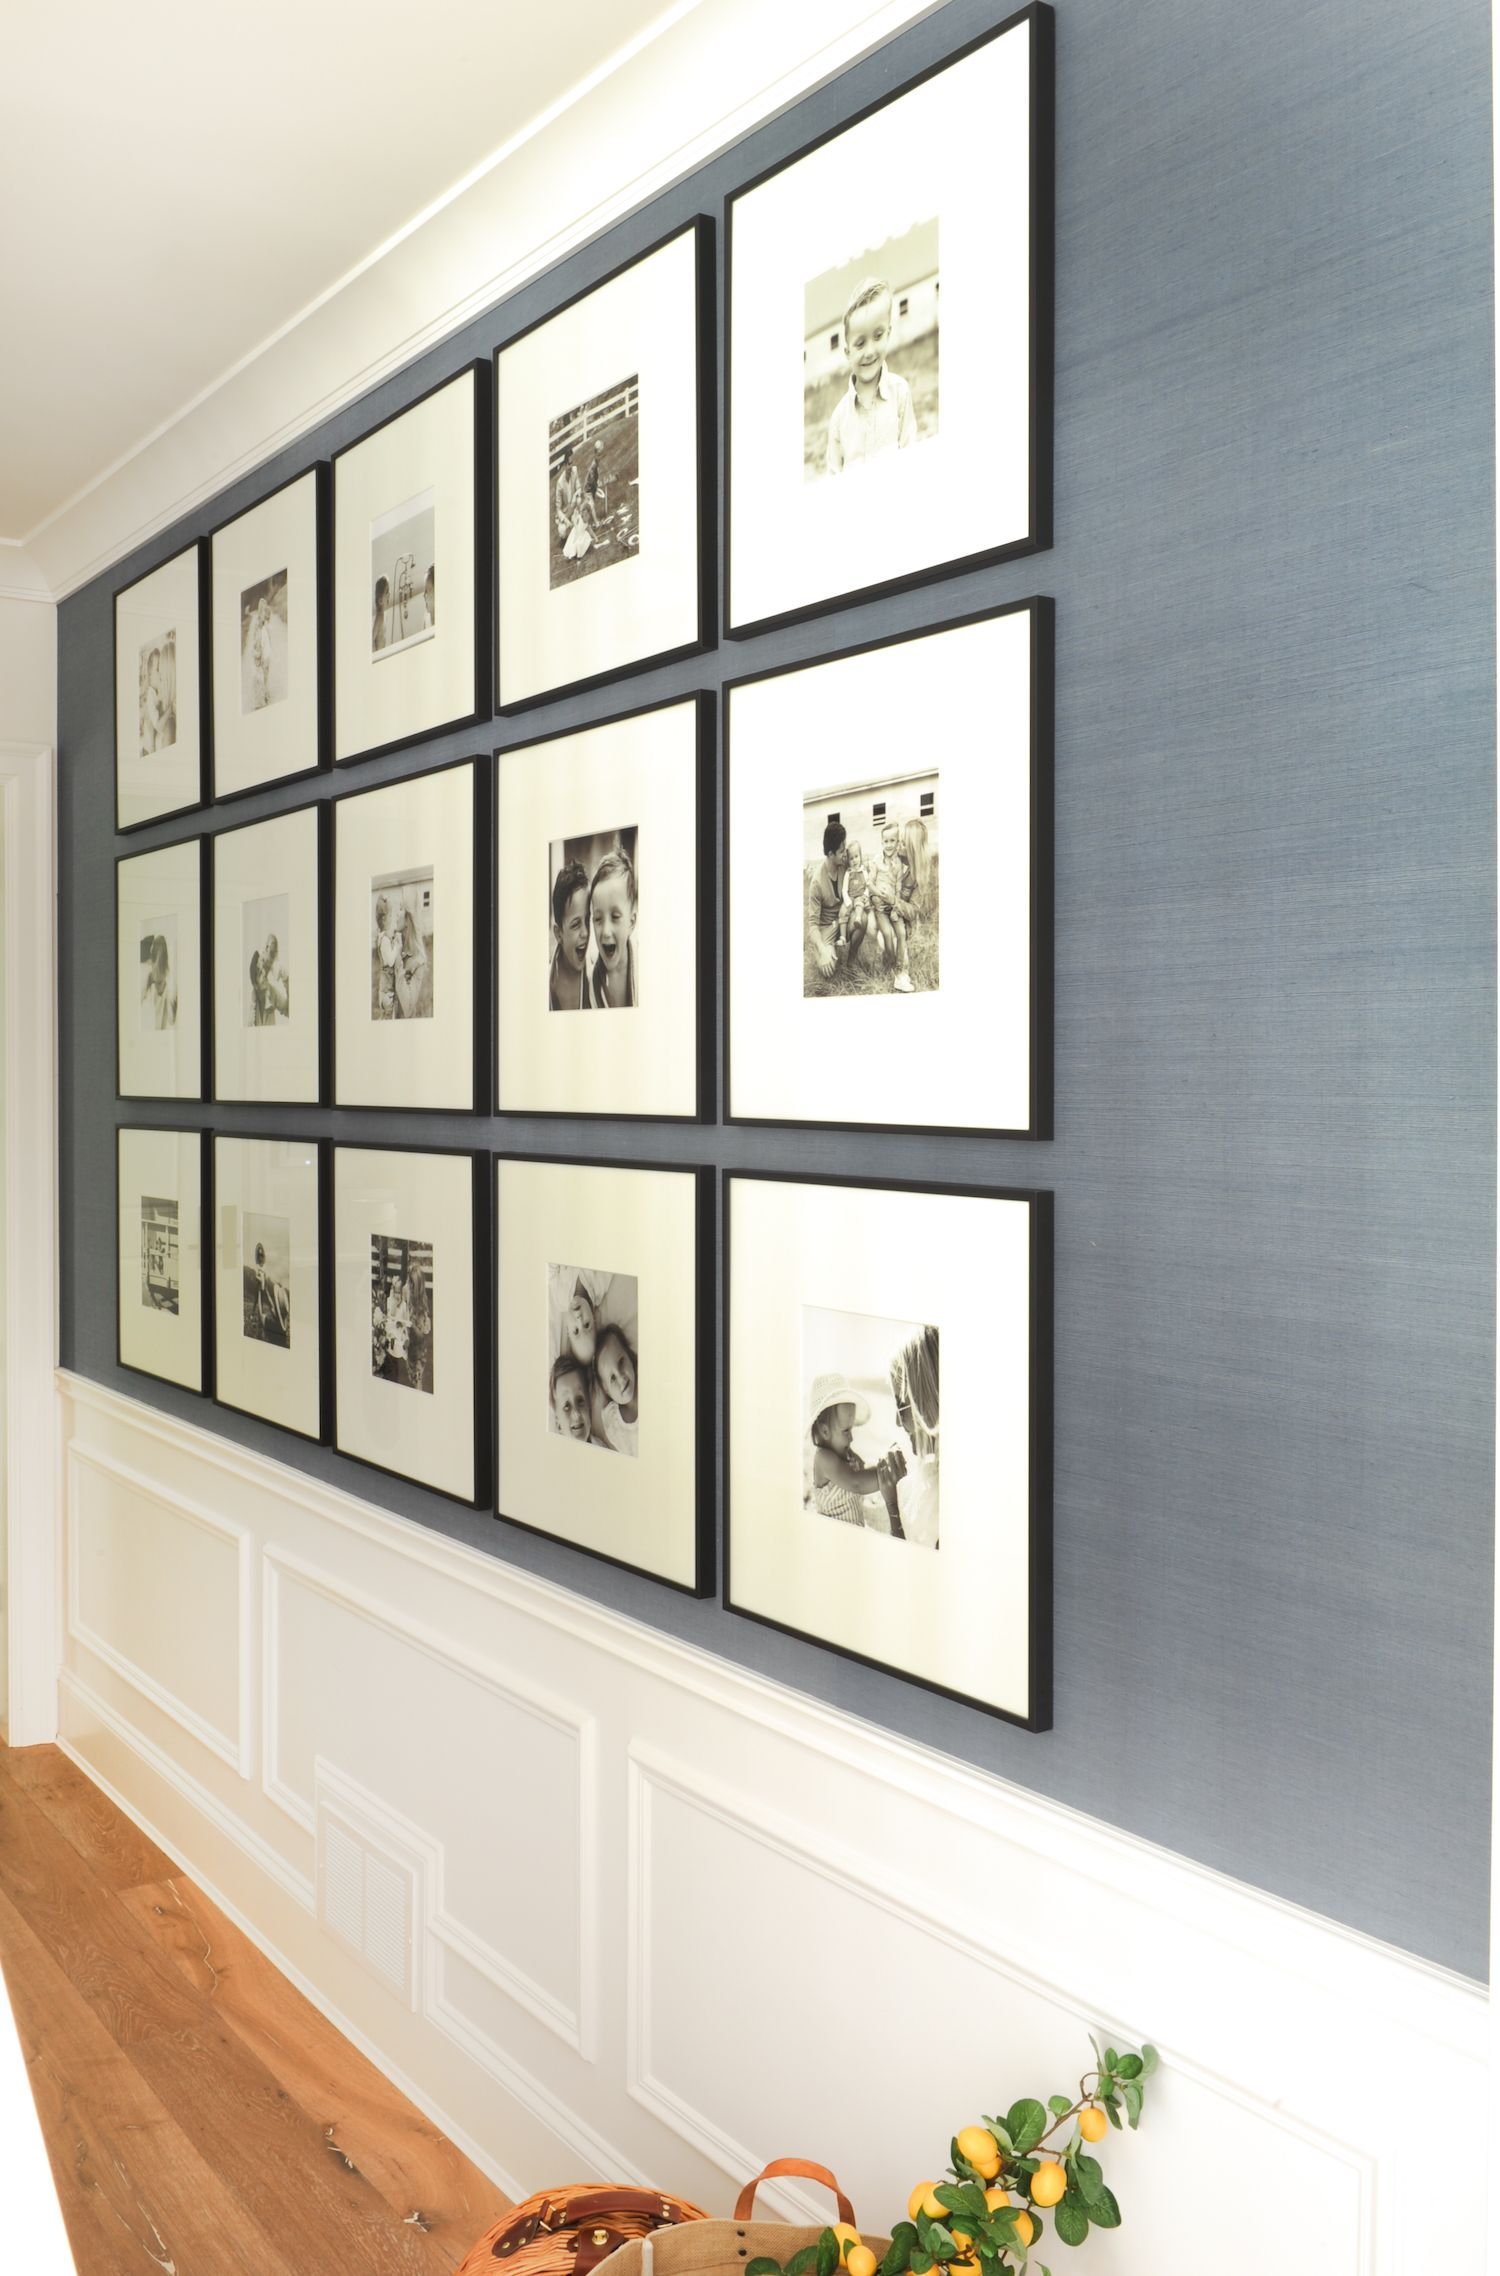 Home Gallery Wall How To Choose The Perfect Style Of Gallery Wall Frames Perfect Gallery Wall Frames On Wall Hallway Gallery Wall